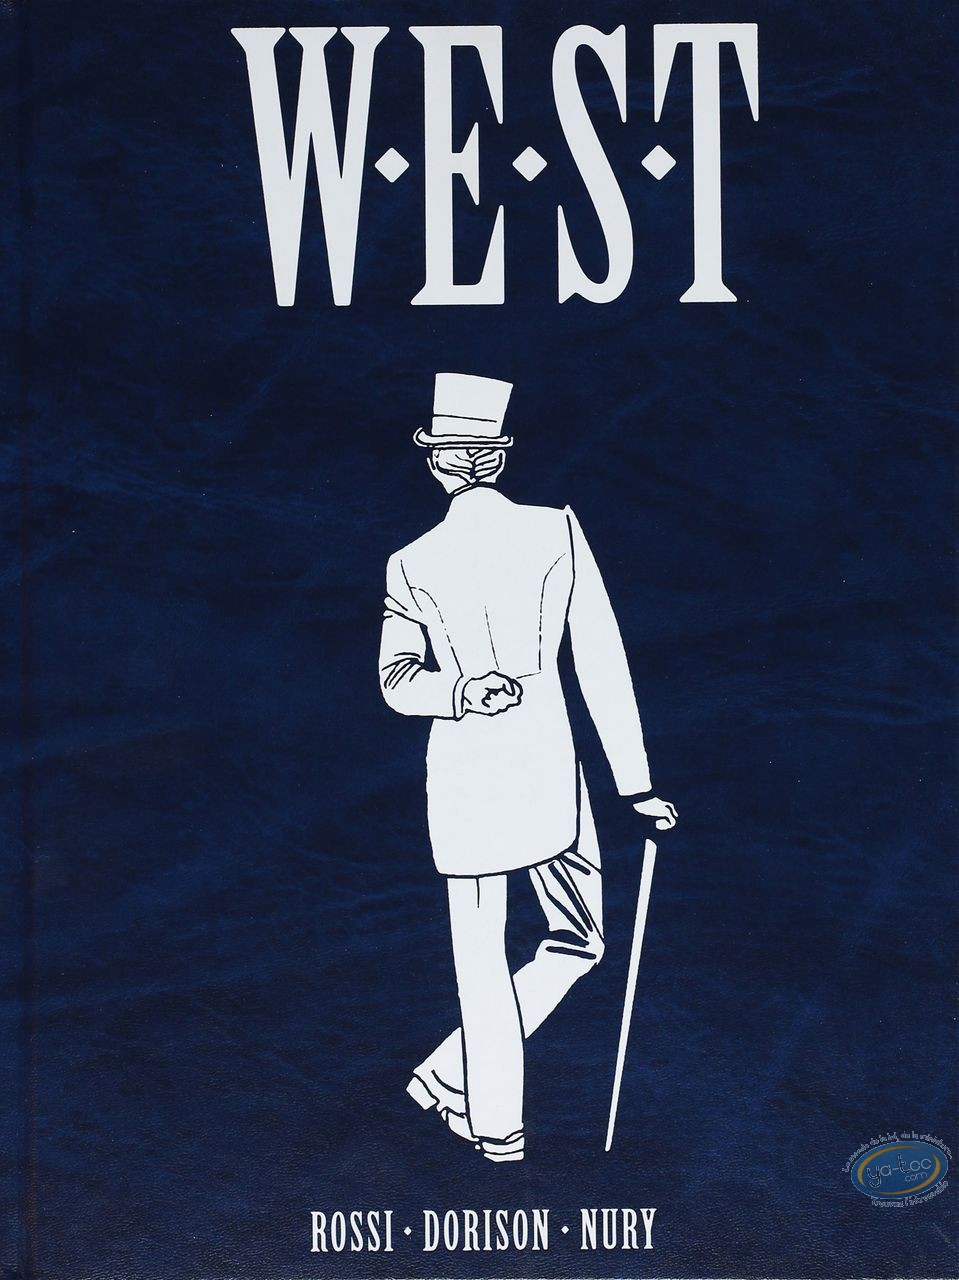 Limited First Edition, W.E.S.T : WEST cycle 3